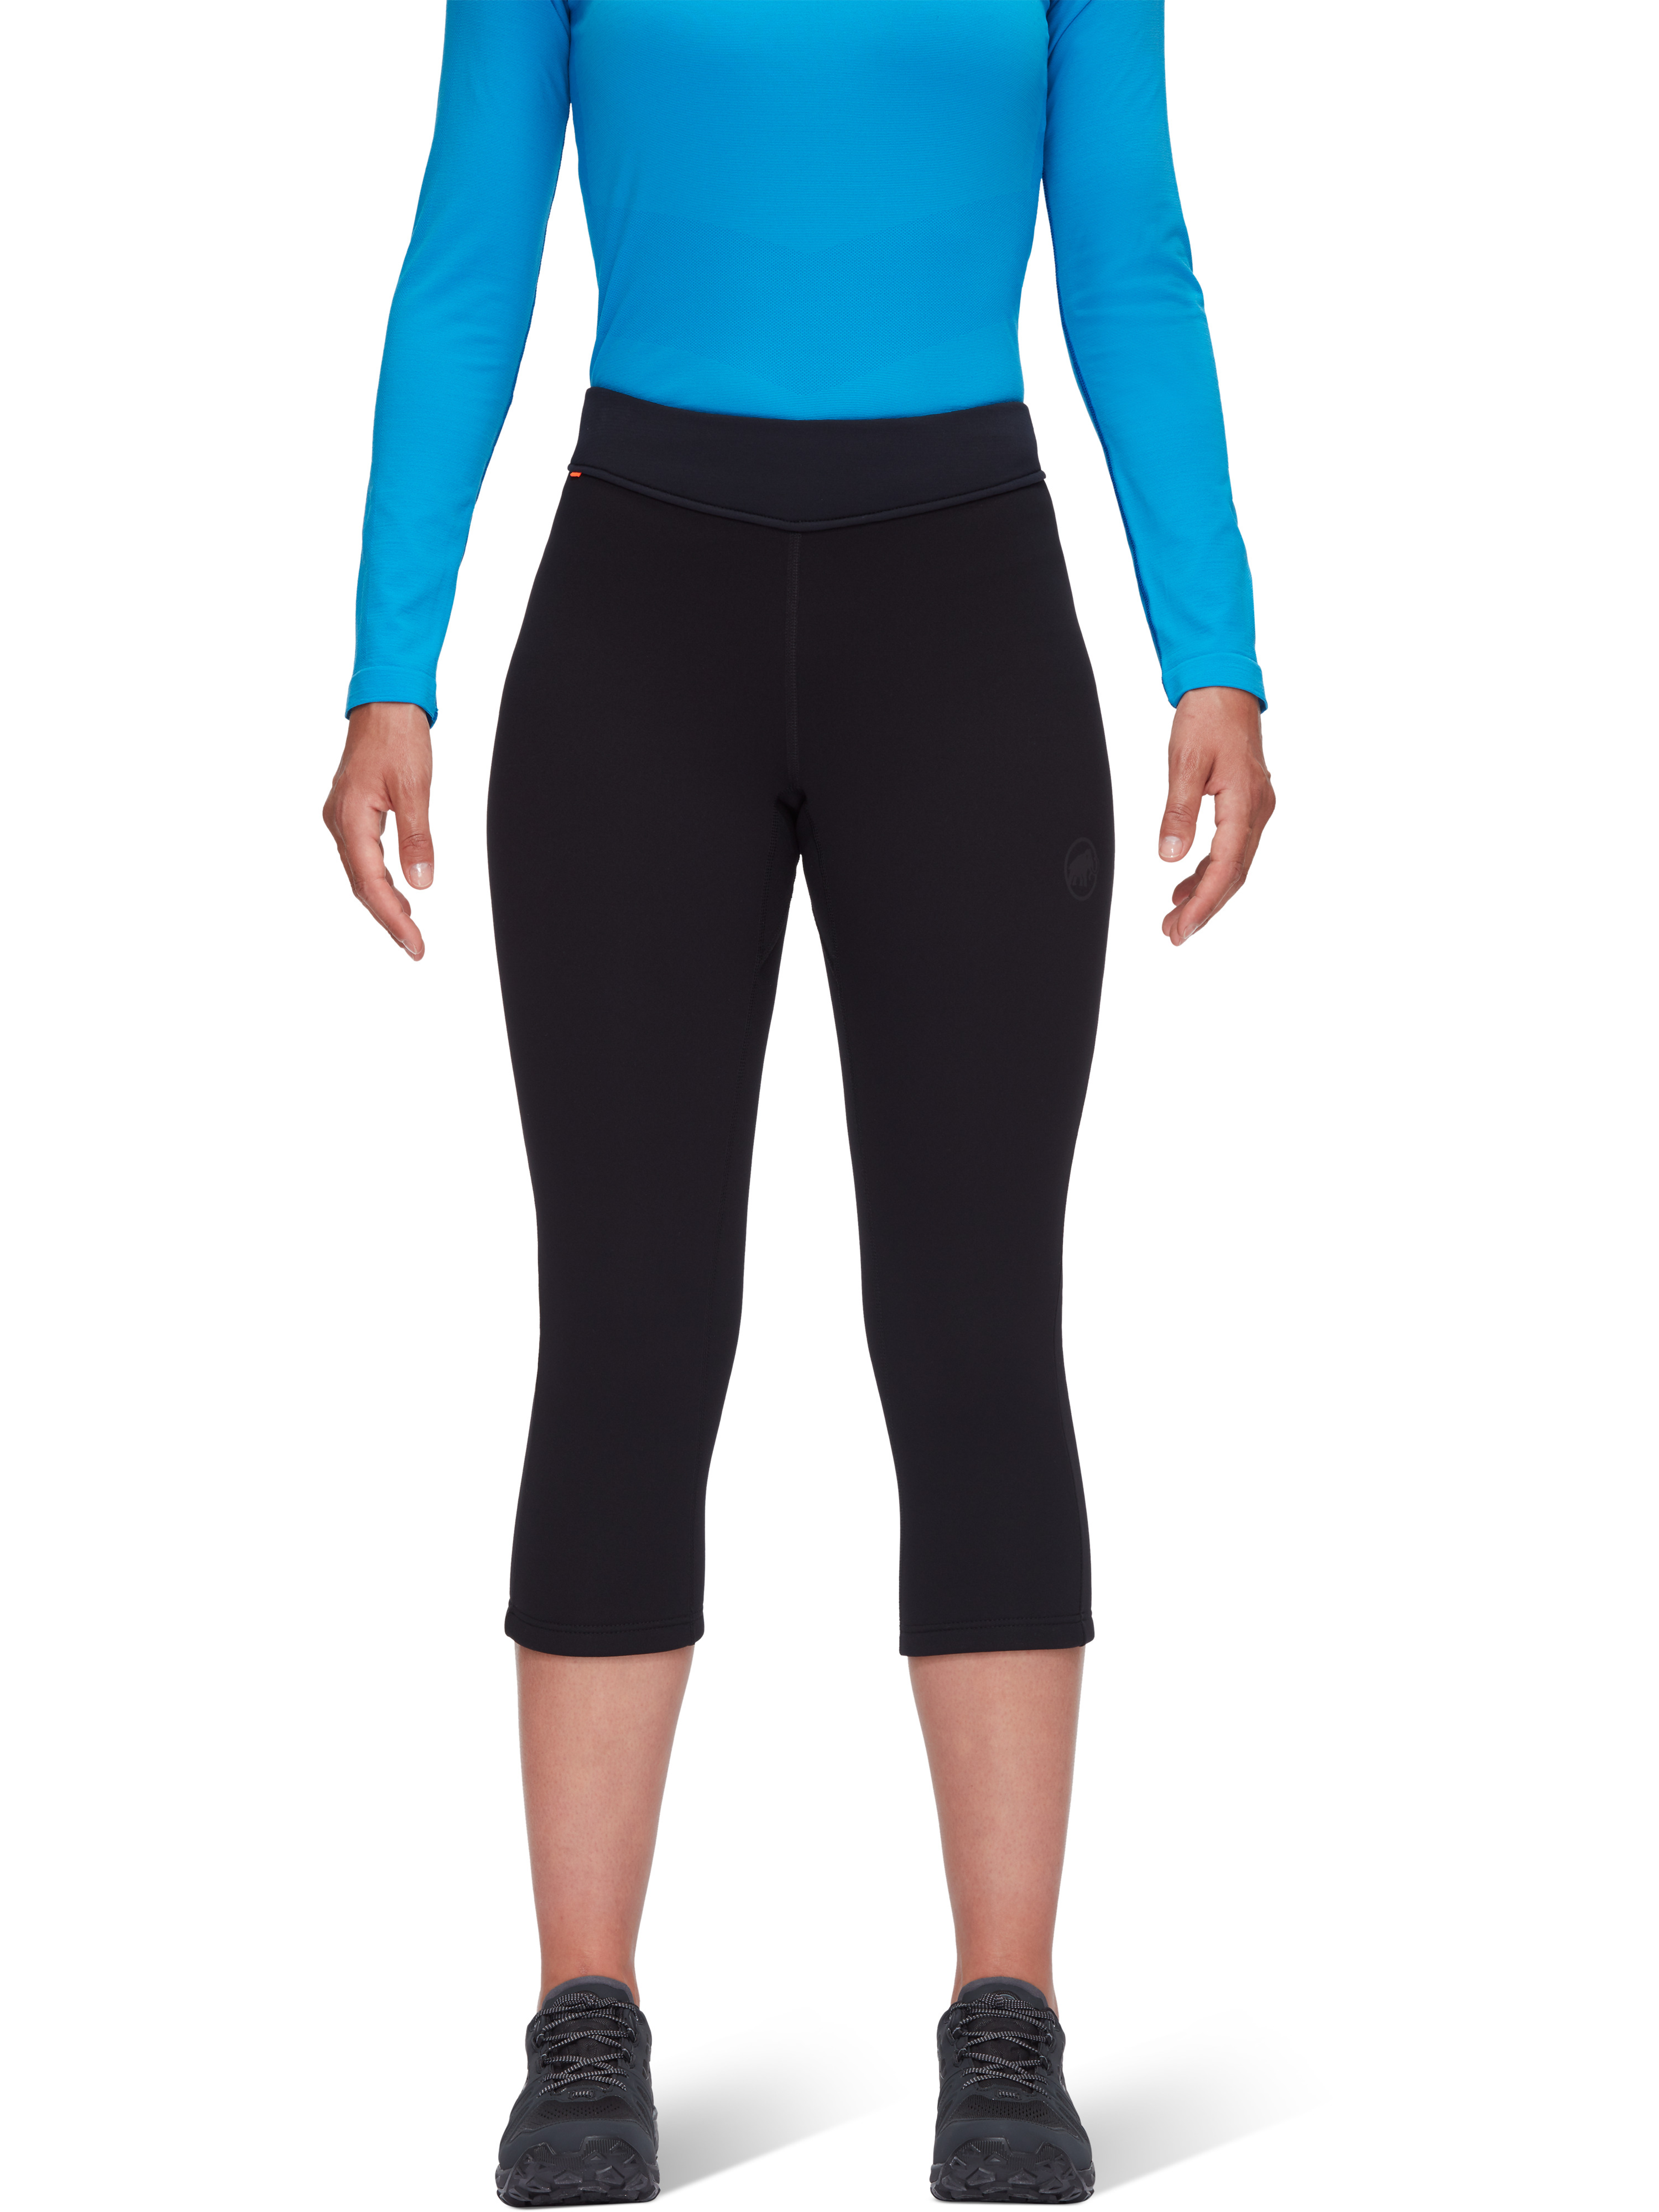 Aconcagua ML Tights 3/4 Women product image